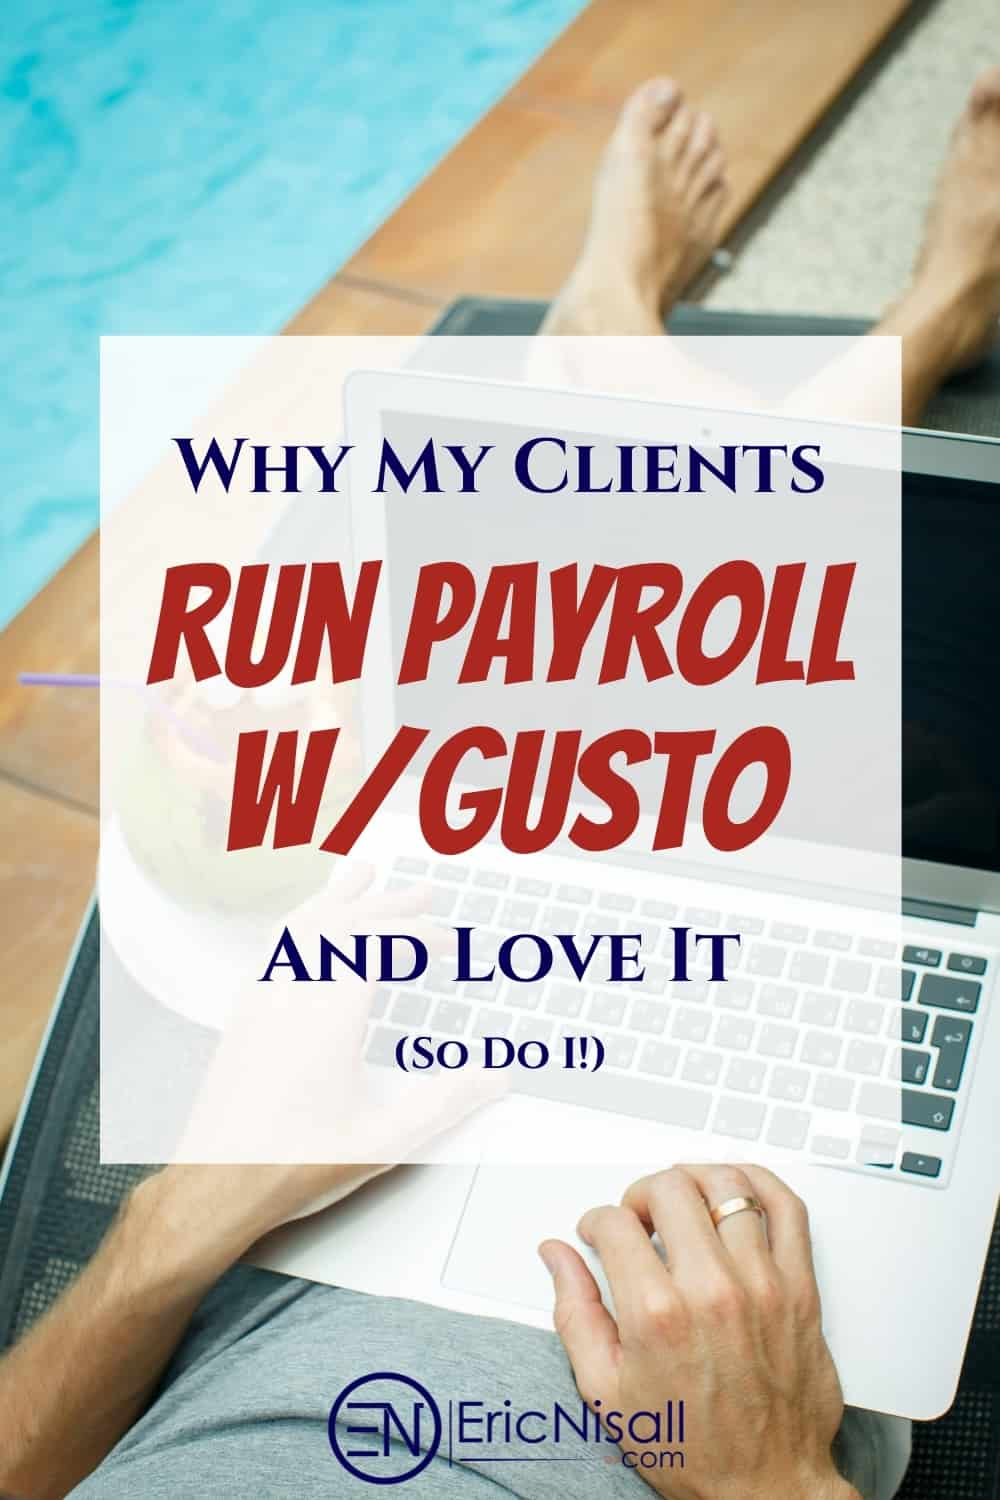 It can be time-consuming and intimidating to run payroll with all it requires. Use Gusto to run payroll & get a practically hands-off experience while still being fully compliant with all of the rules! via @ericnisall